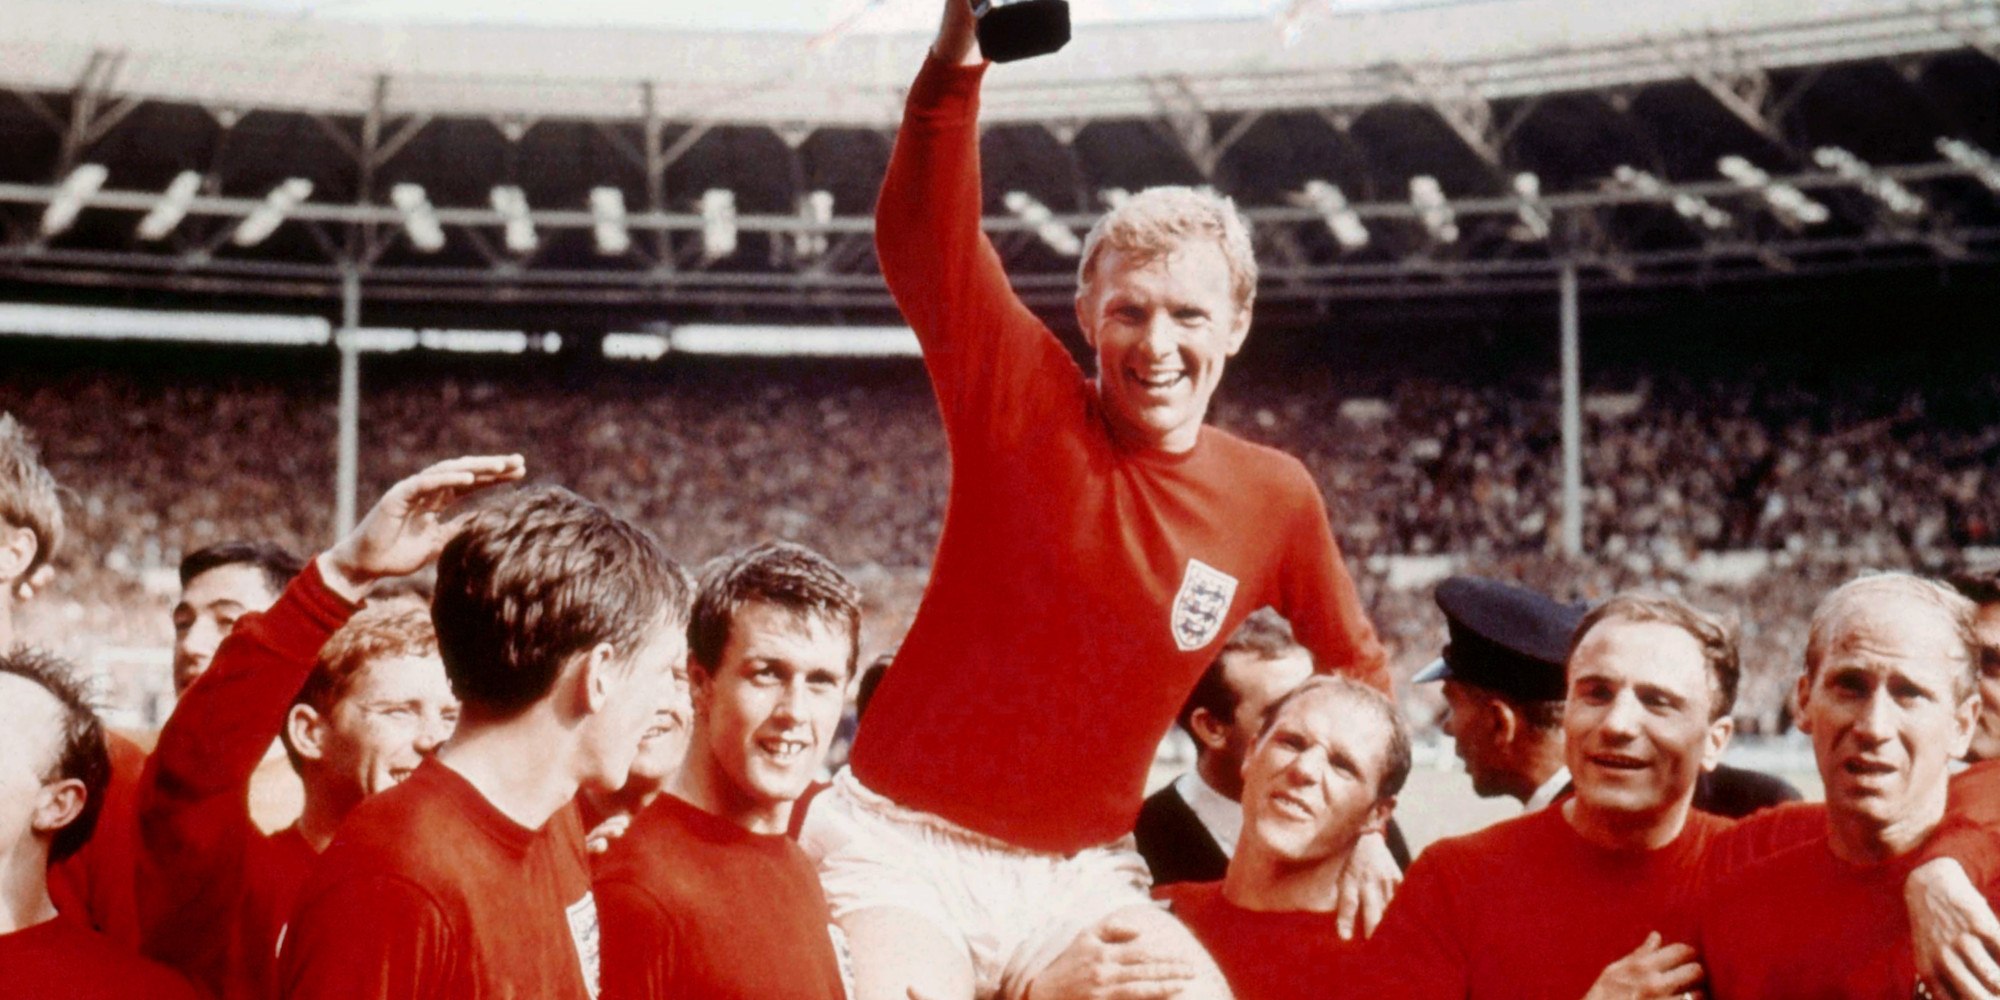 1966 world cup final - photo #1